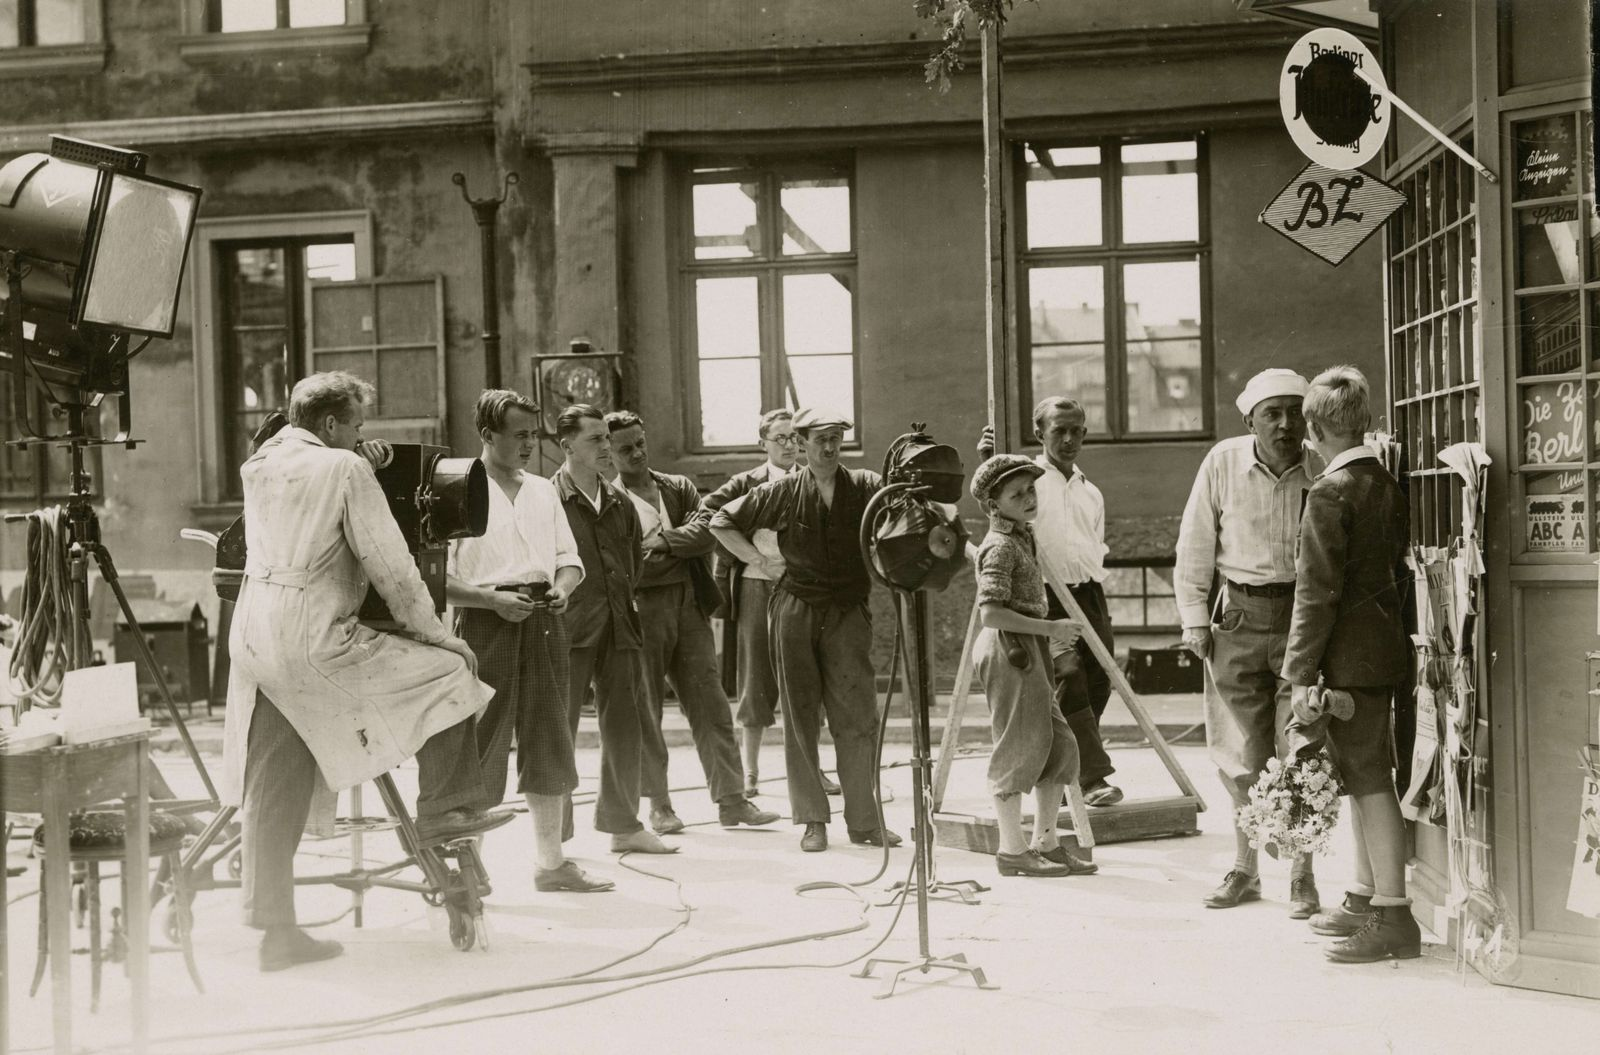 Behind the scenes photo of the film Emil and the Detectives (Germany 1931, directed by Gerhardt Lamprecht)